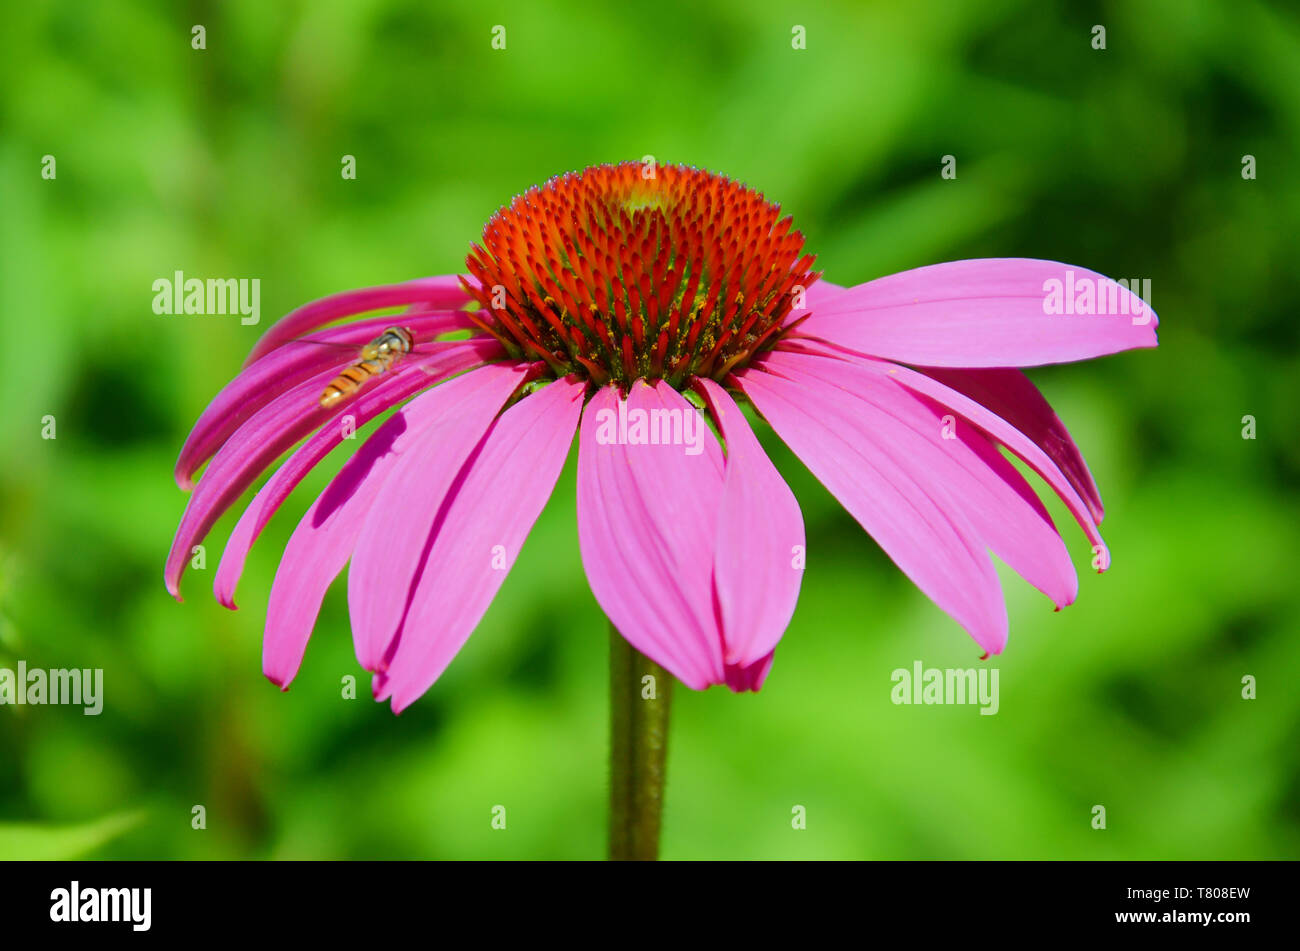 Macro photography of Echinacea purpurea, eastern purple coneflower or also hedgehog coneflower captured together with a hoverfly flying around. The picture has blurred green background. - Stock Image